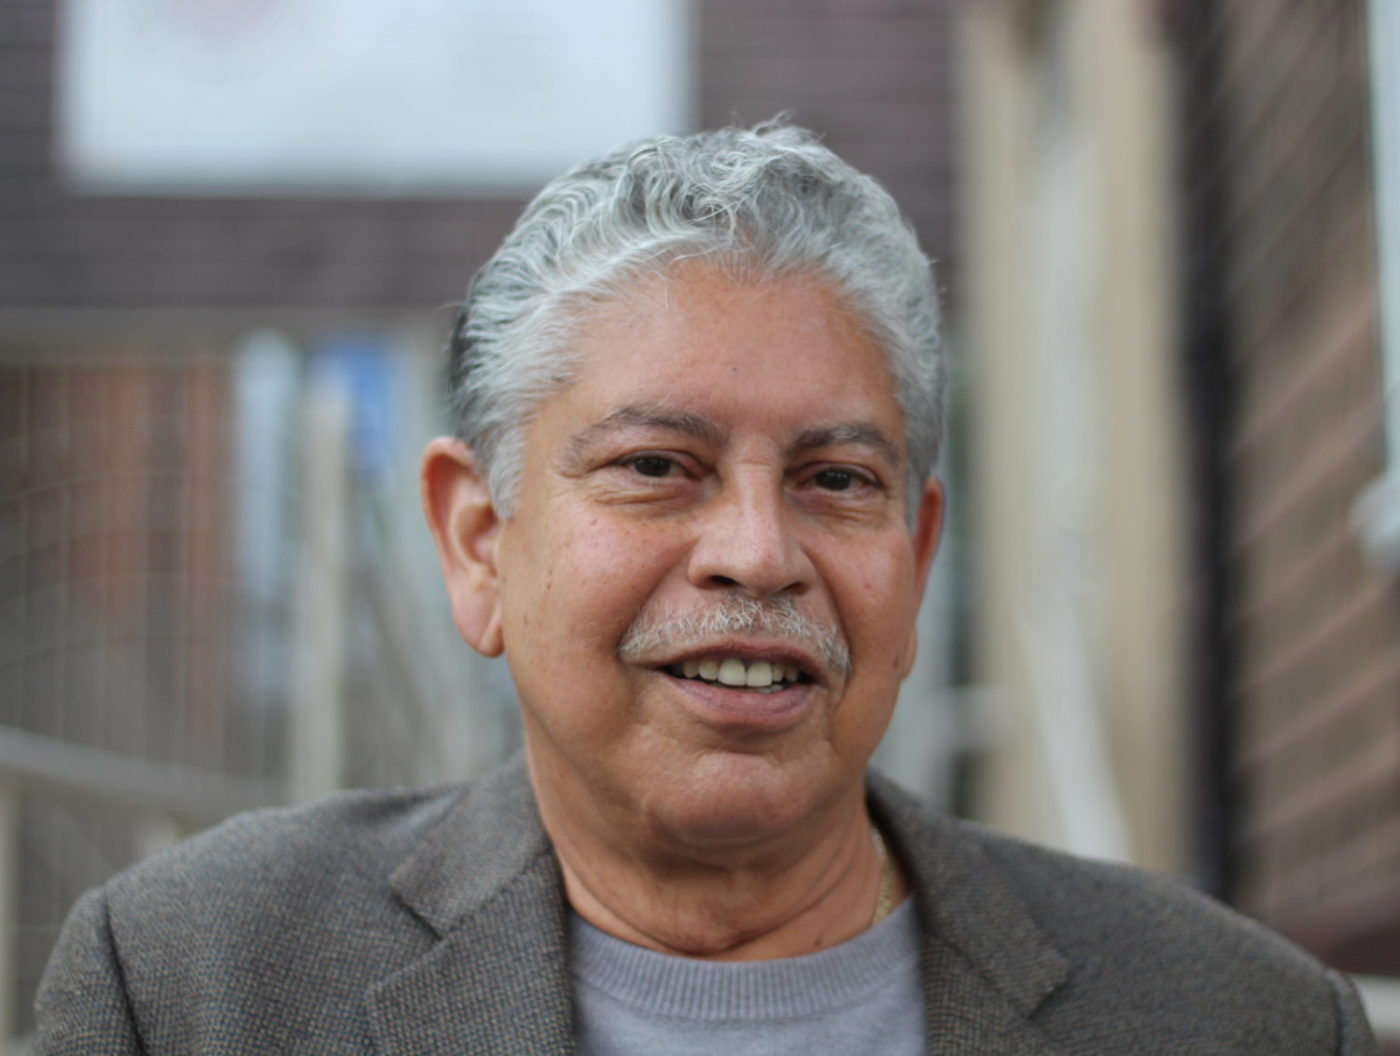 Sam-Ruiz-former-CEO-MNC-1400x1056, Leading San Francisco Mission District organization appoints new CEO after 40 years, Local News & Views